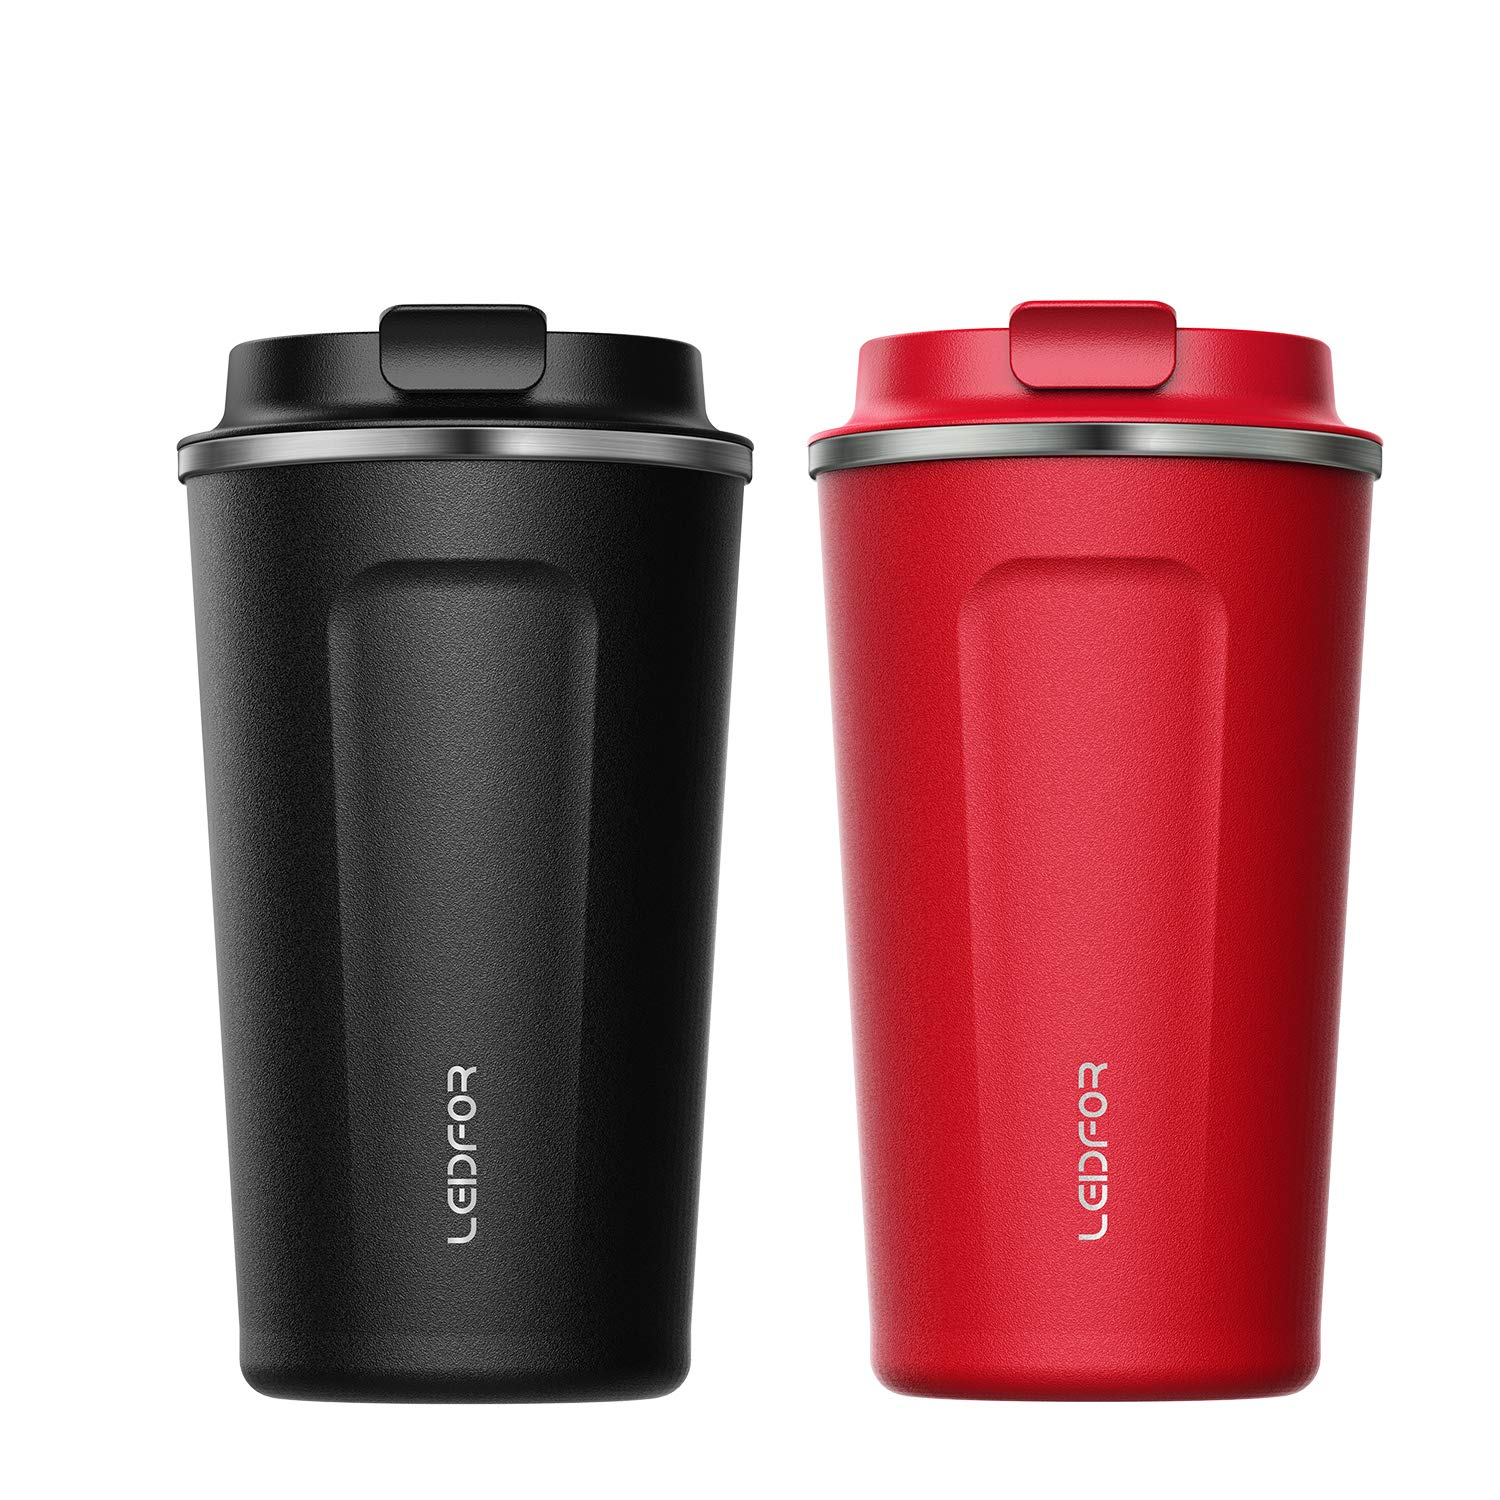 8943c0e75e1 Amazon.com: Leidfor Insulated Tumbler Coffee Travel Mug Vacuum Insulation  Stainless Steel with Lid Leakproof 17oz Black Red TWO PACK: Kitchen & Dining